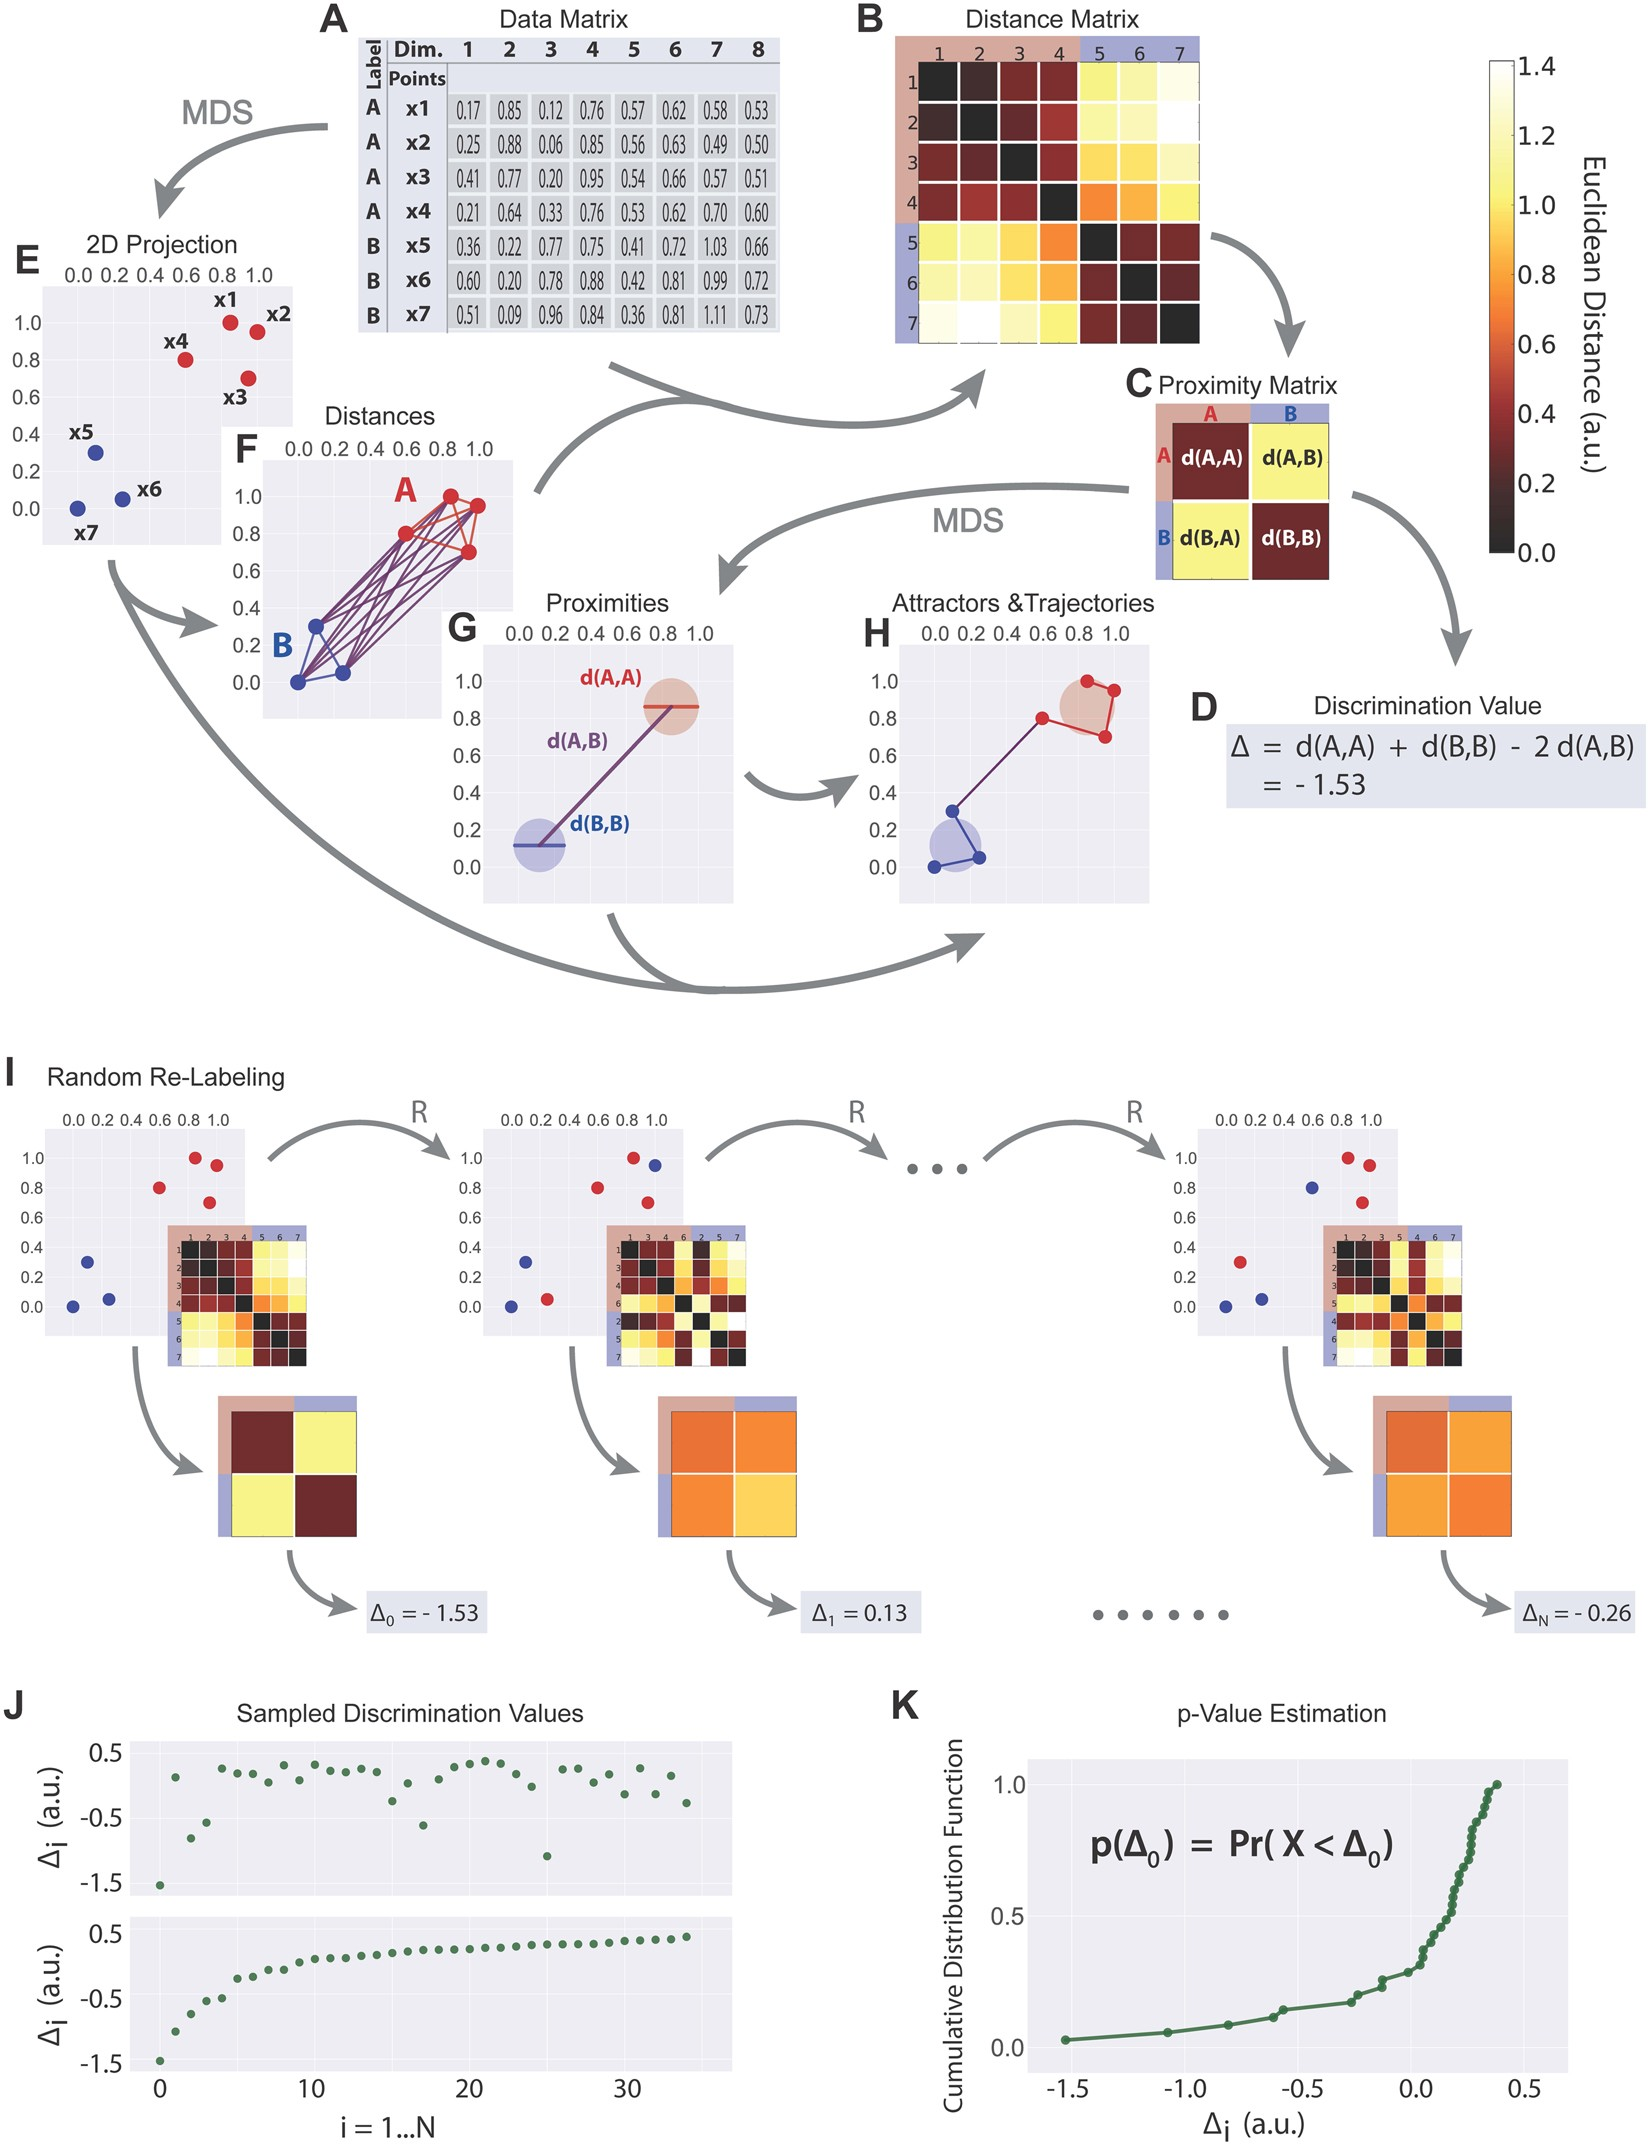 A Statistical Method For Analyzing And Comparing Spatiotemporal Behavioral State Machines Are Used Active Objects In Other Words Cortical Activation Patterns Scientific Reports